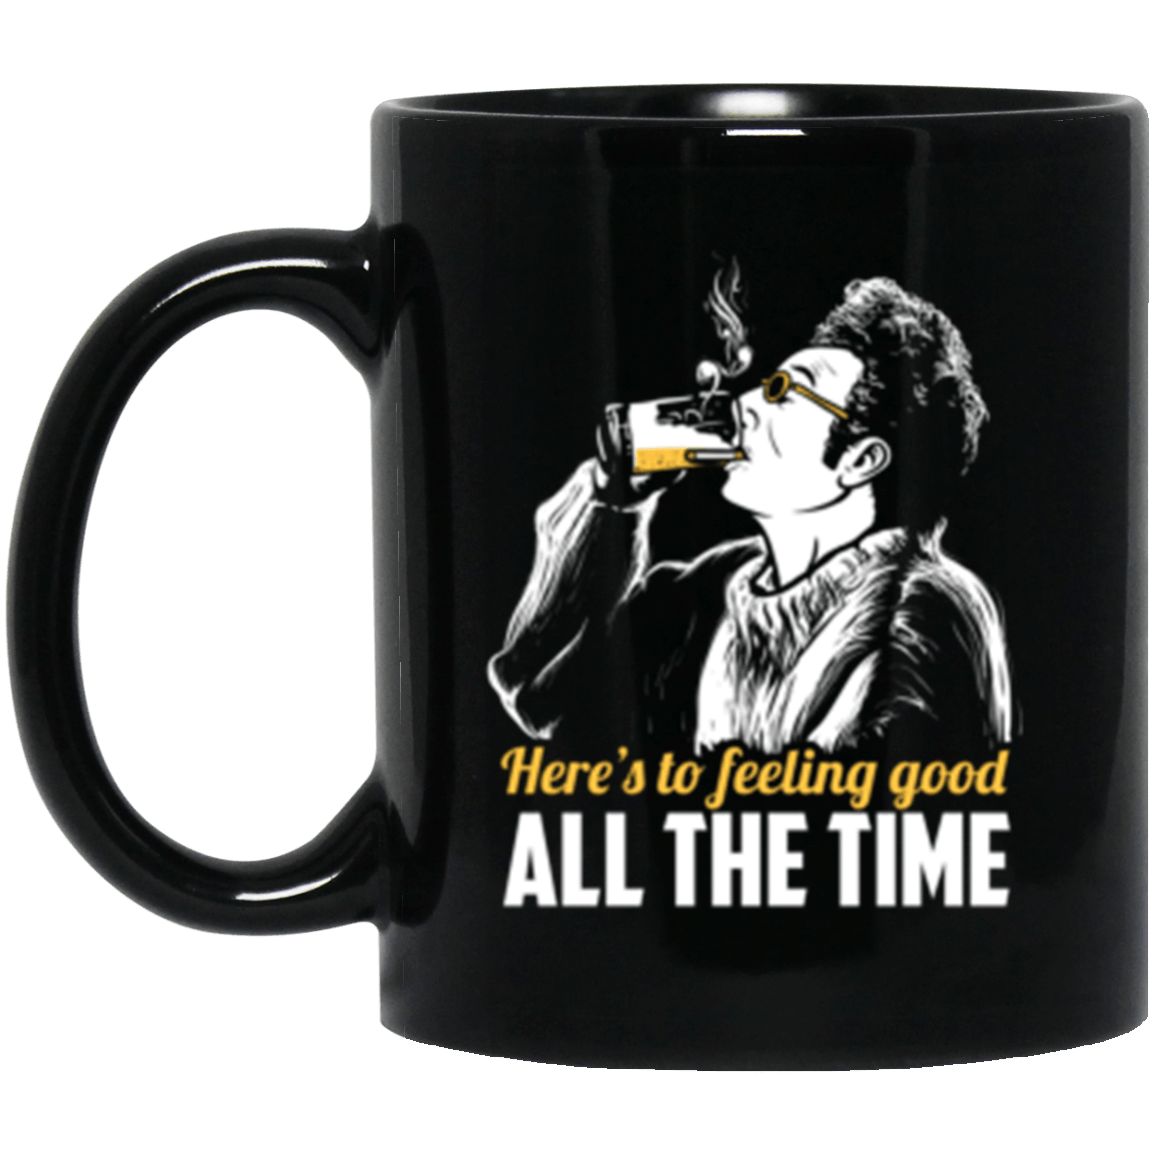 Feeling Good Black Mug 11oz (2-sided)